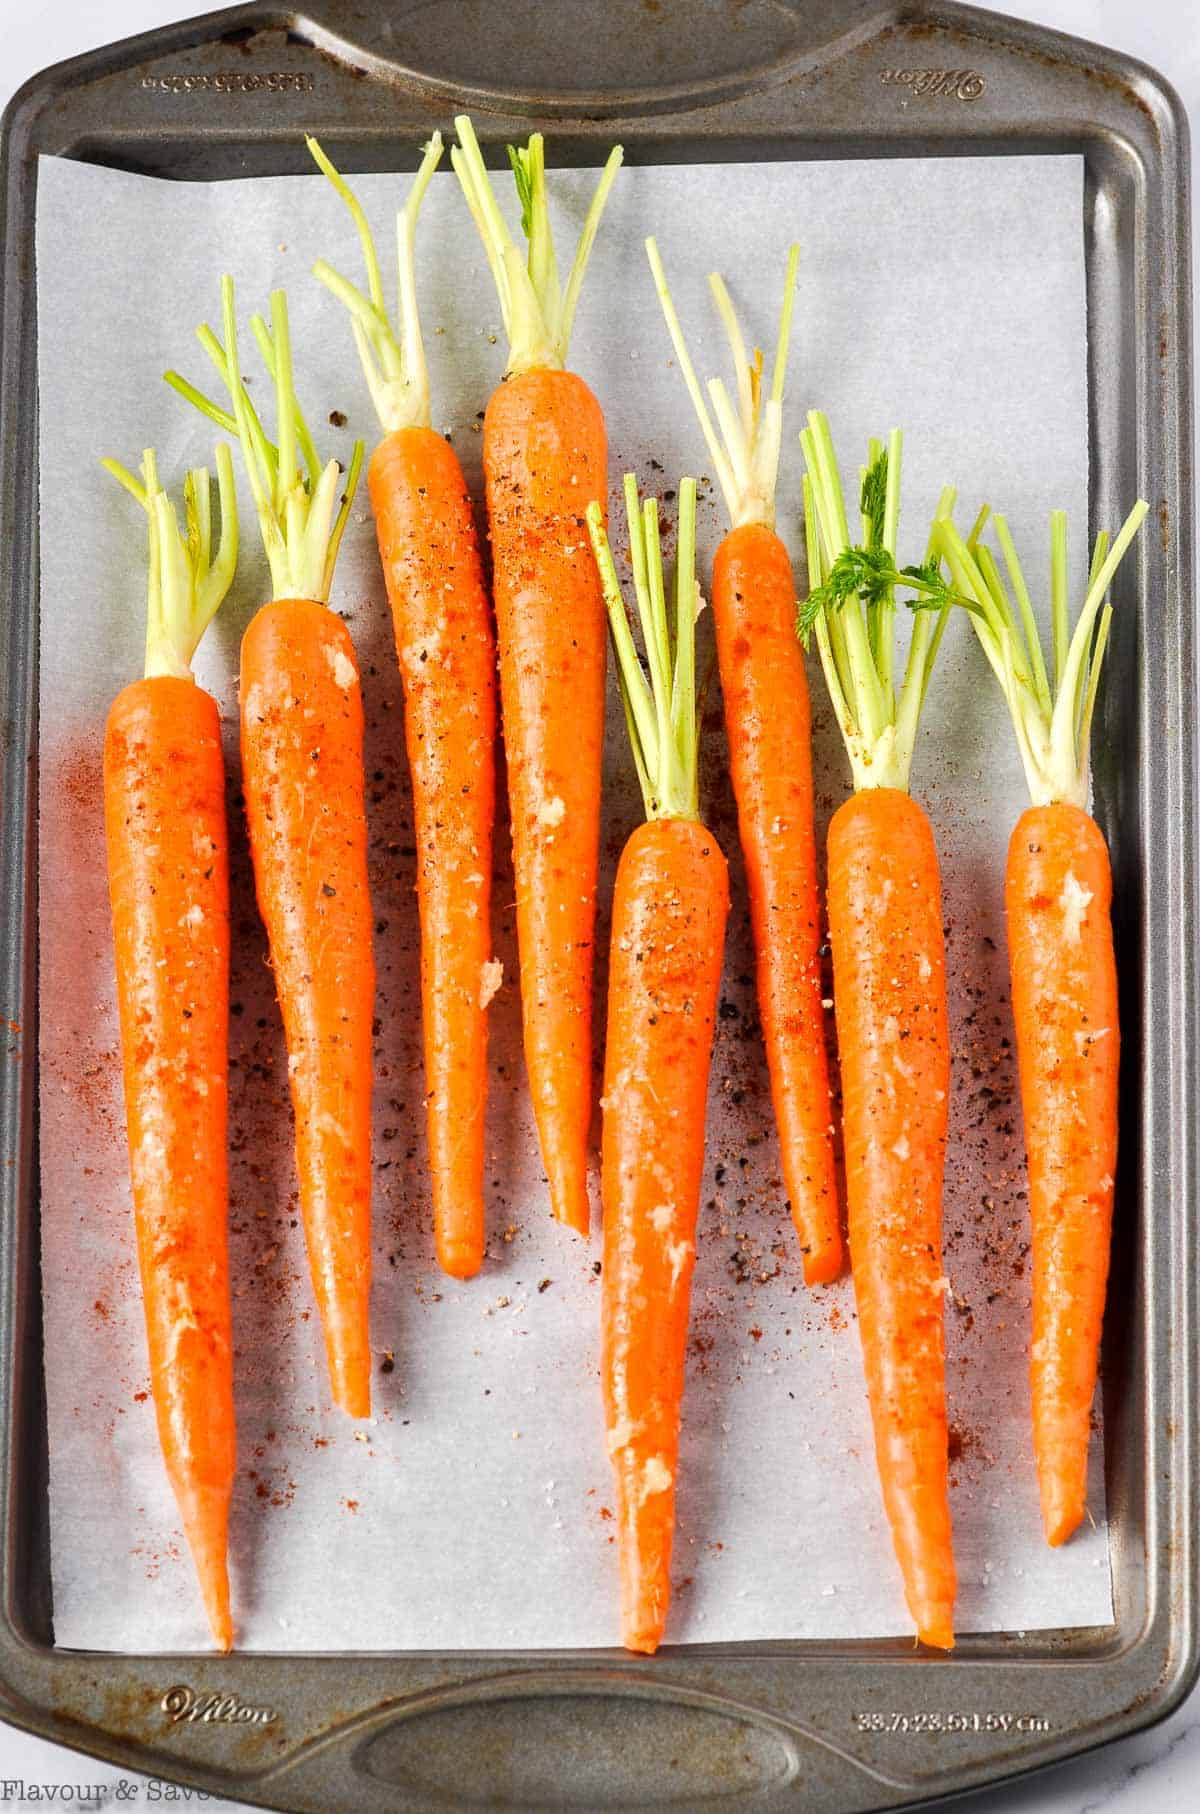 Whole carrots on a baking sheet ready to roast in the oven.